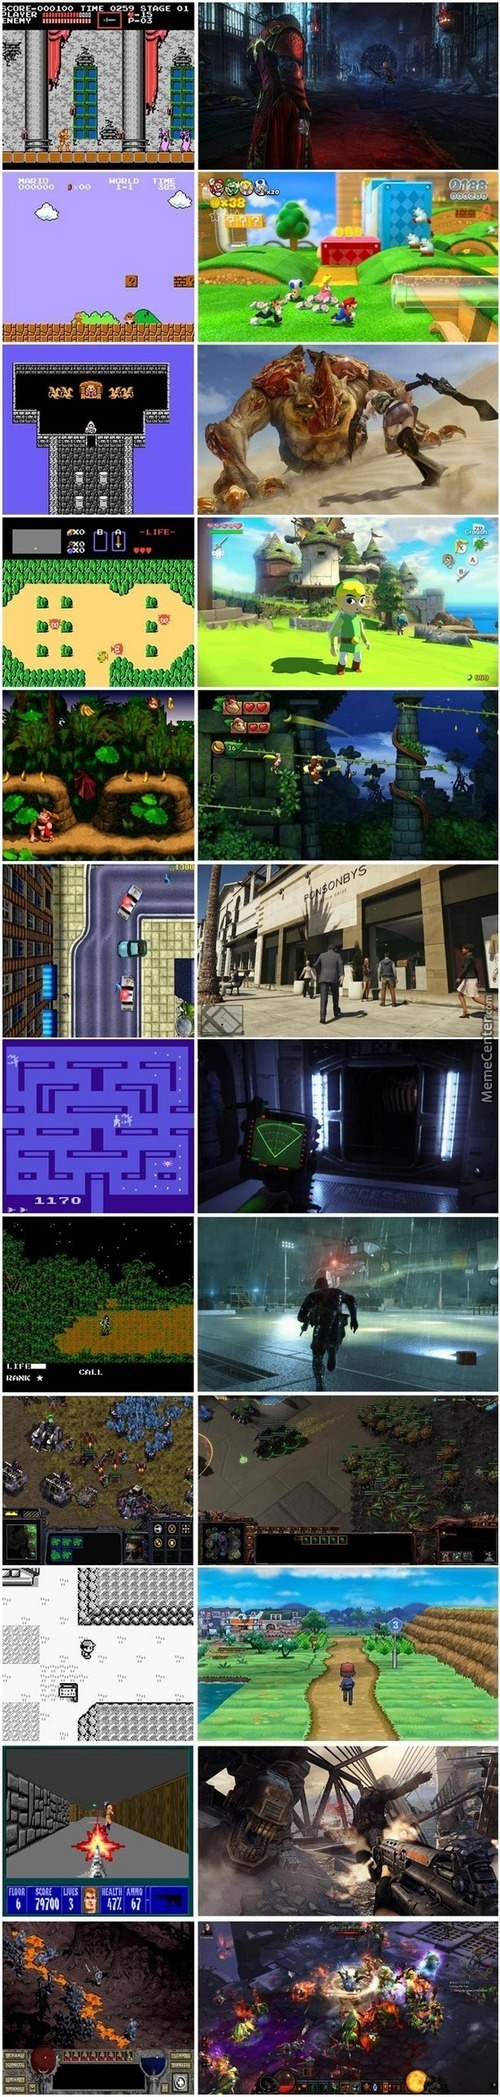 Video Games : Then And Now